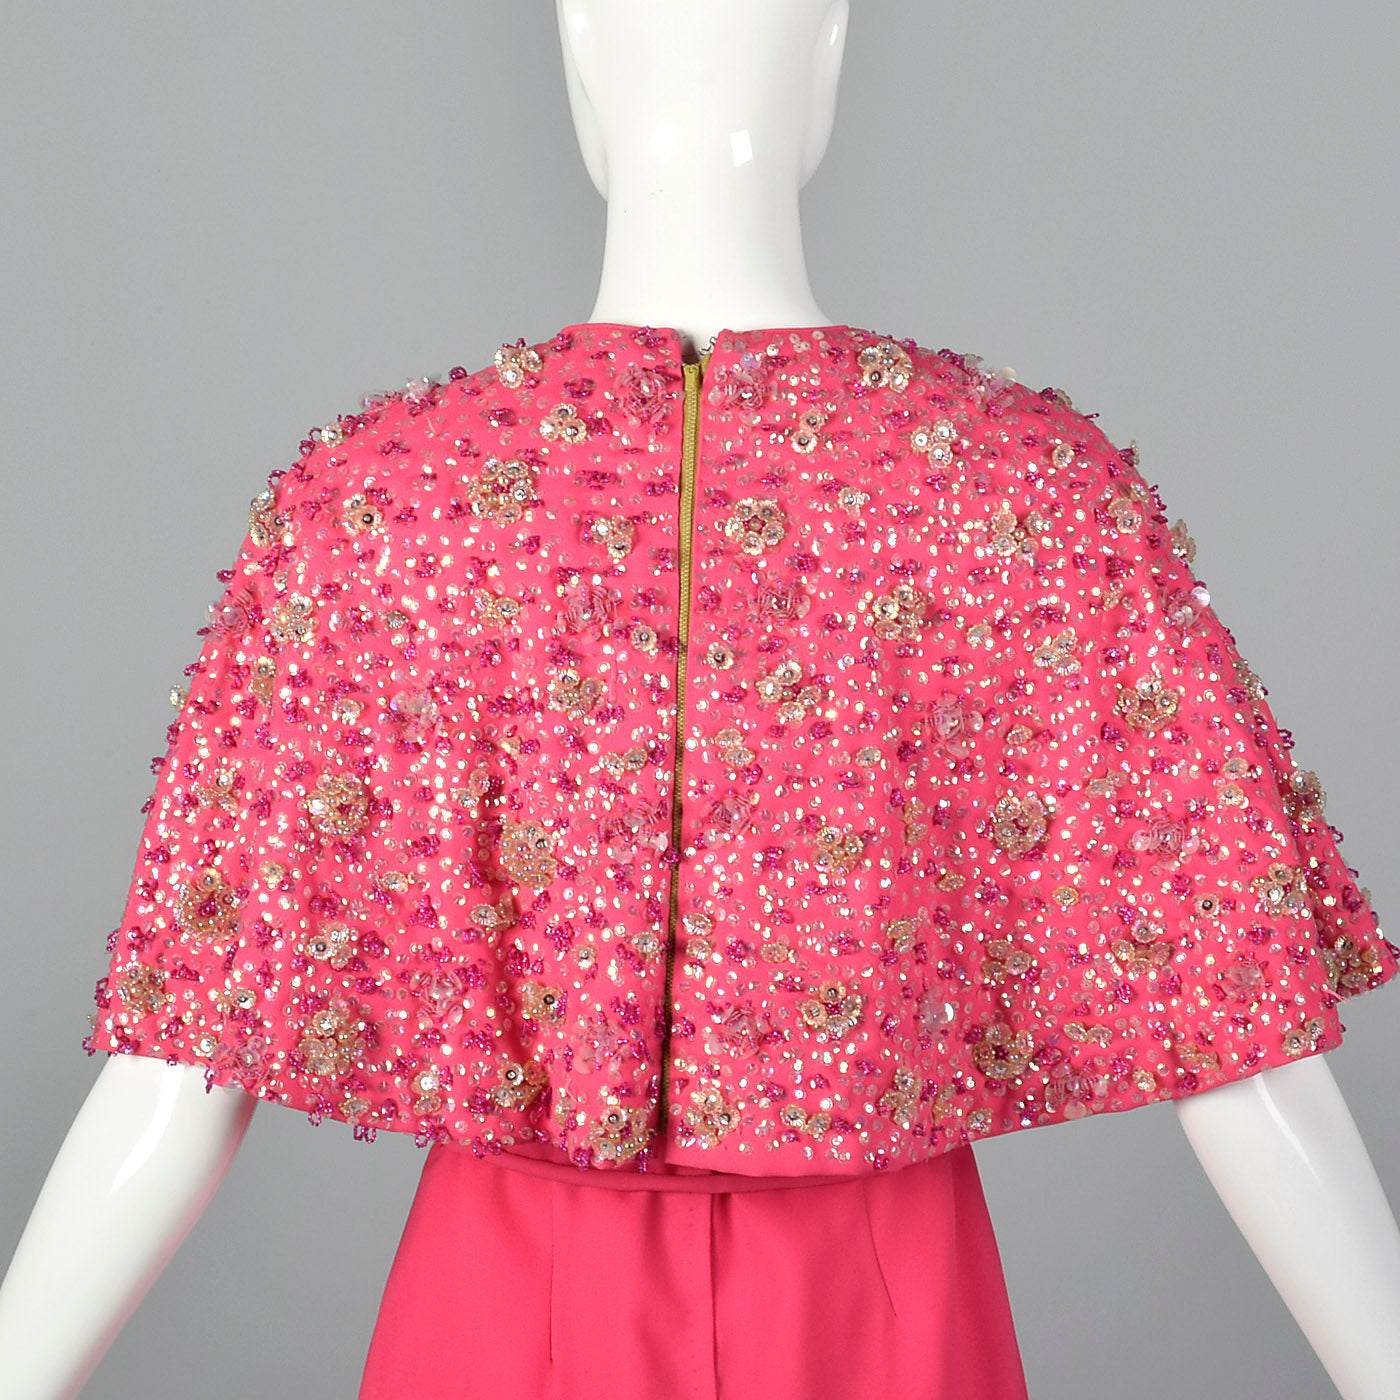 1960s Pink Dress with Matching Beaded Cape